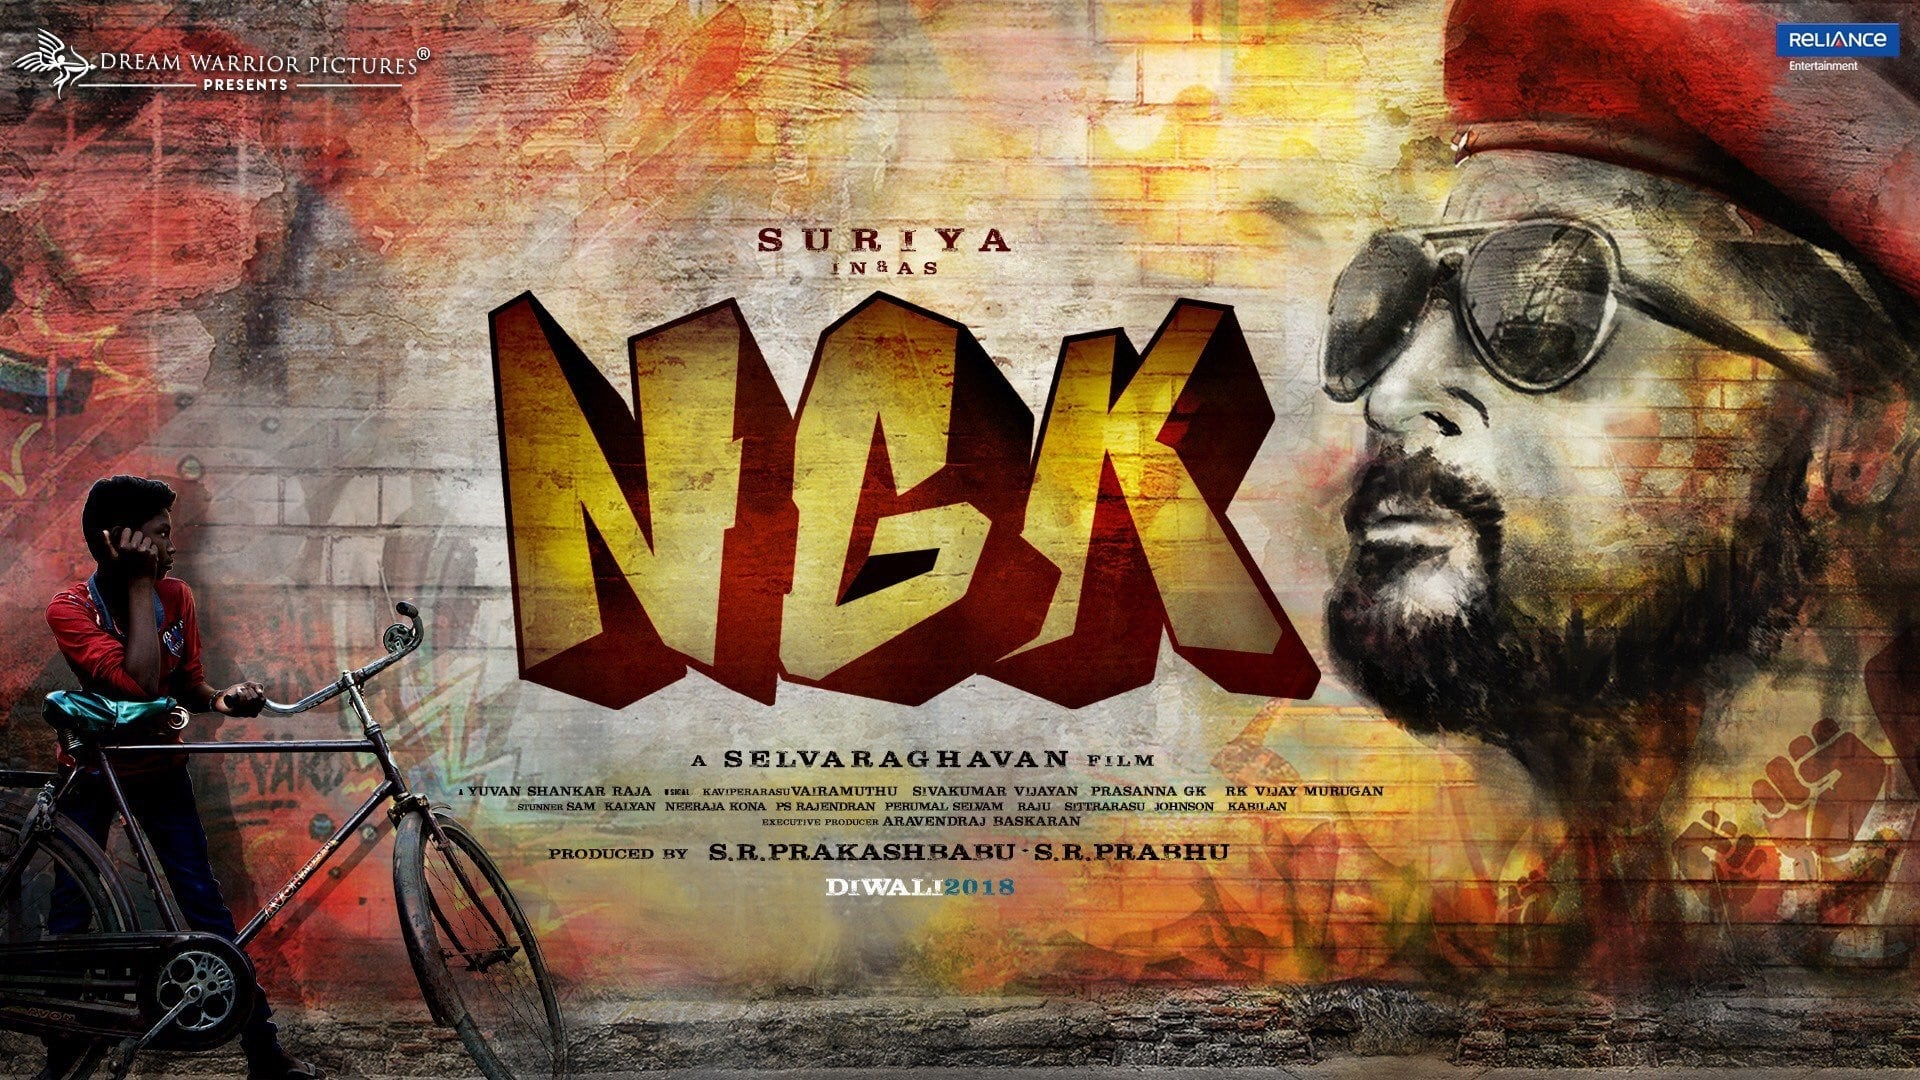 Regarder NGK en streaming gratuit